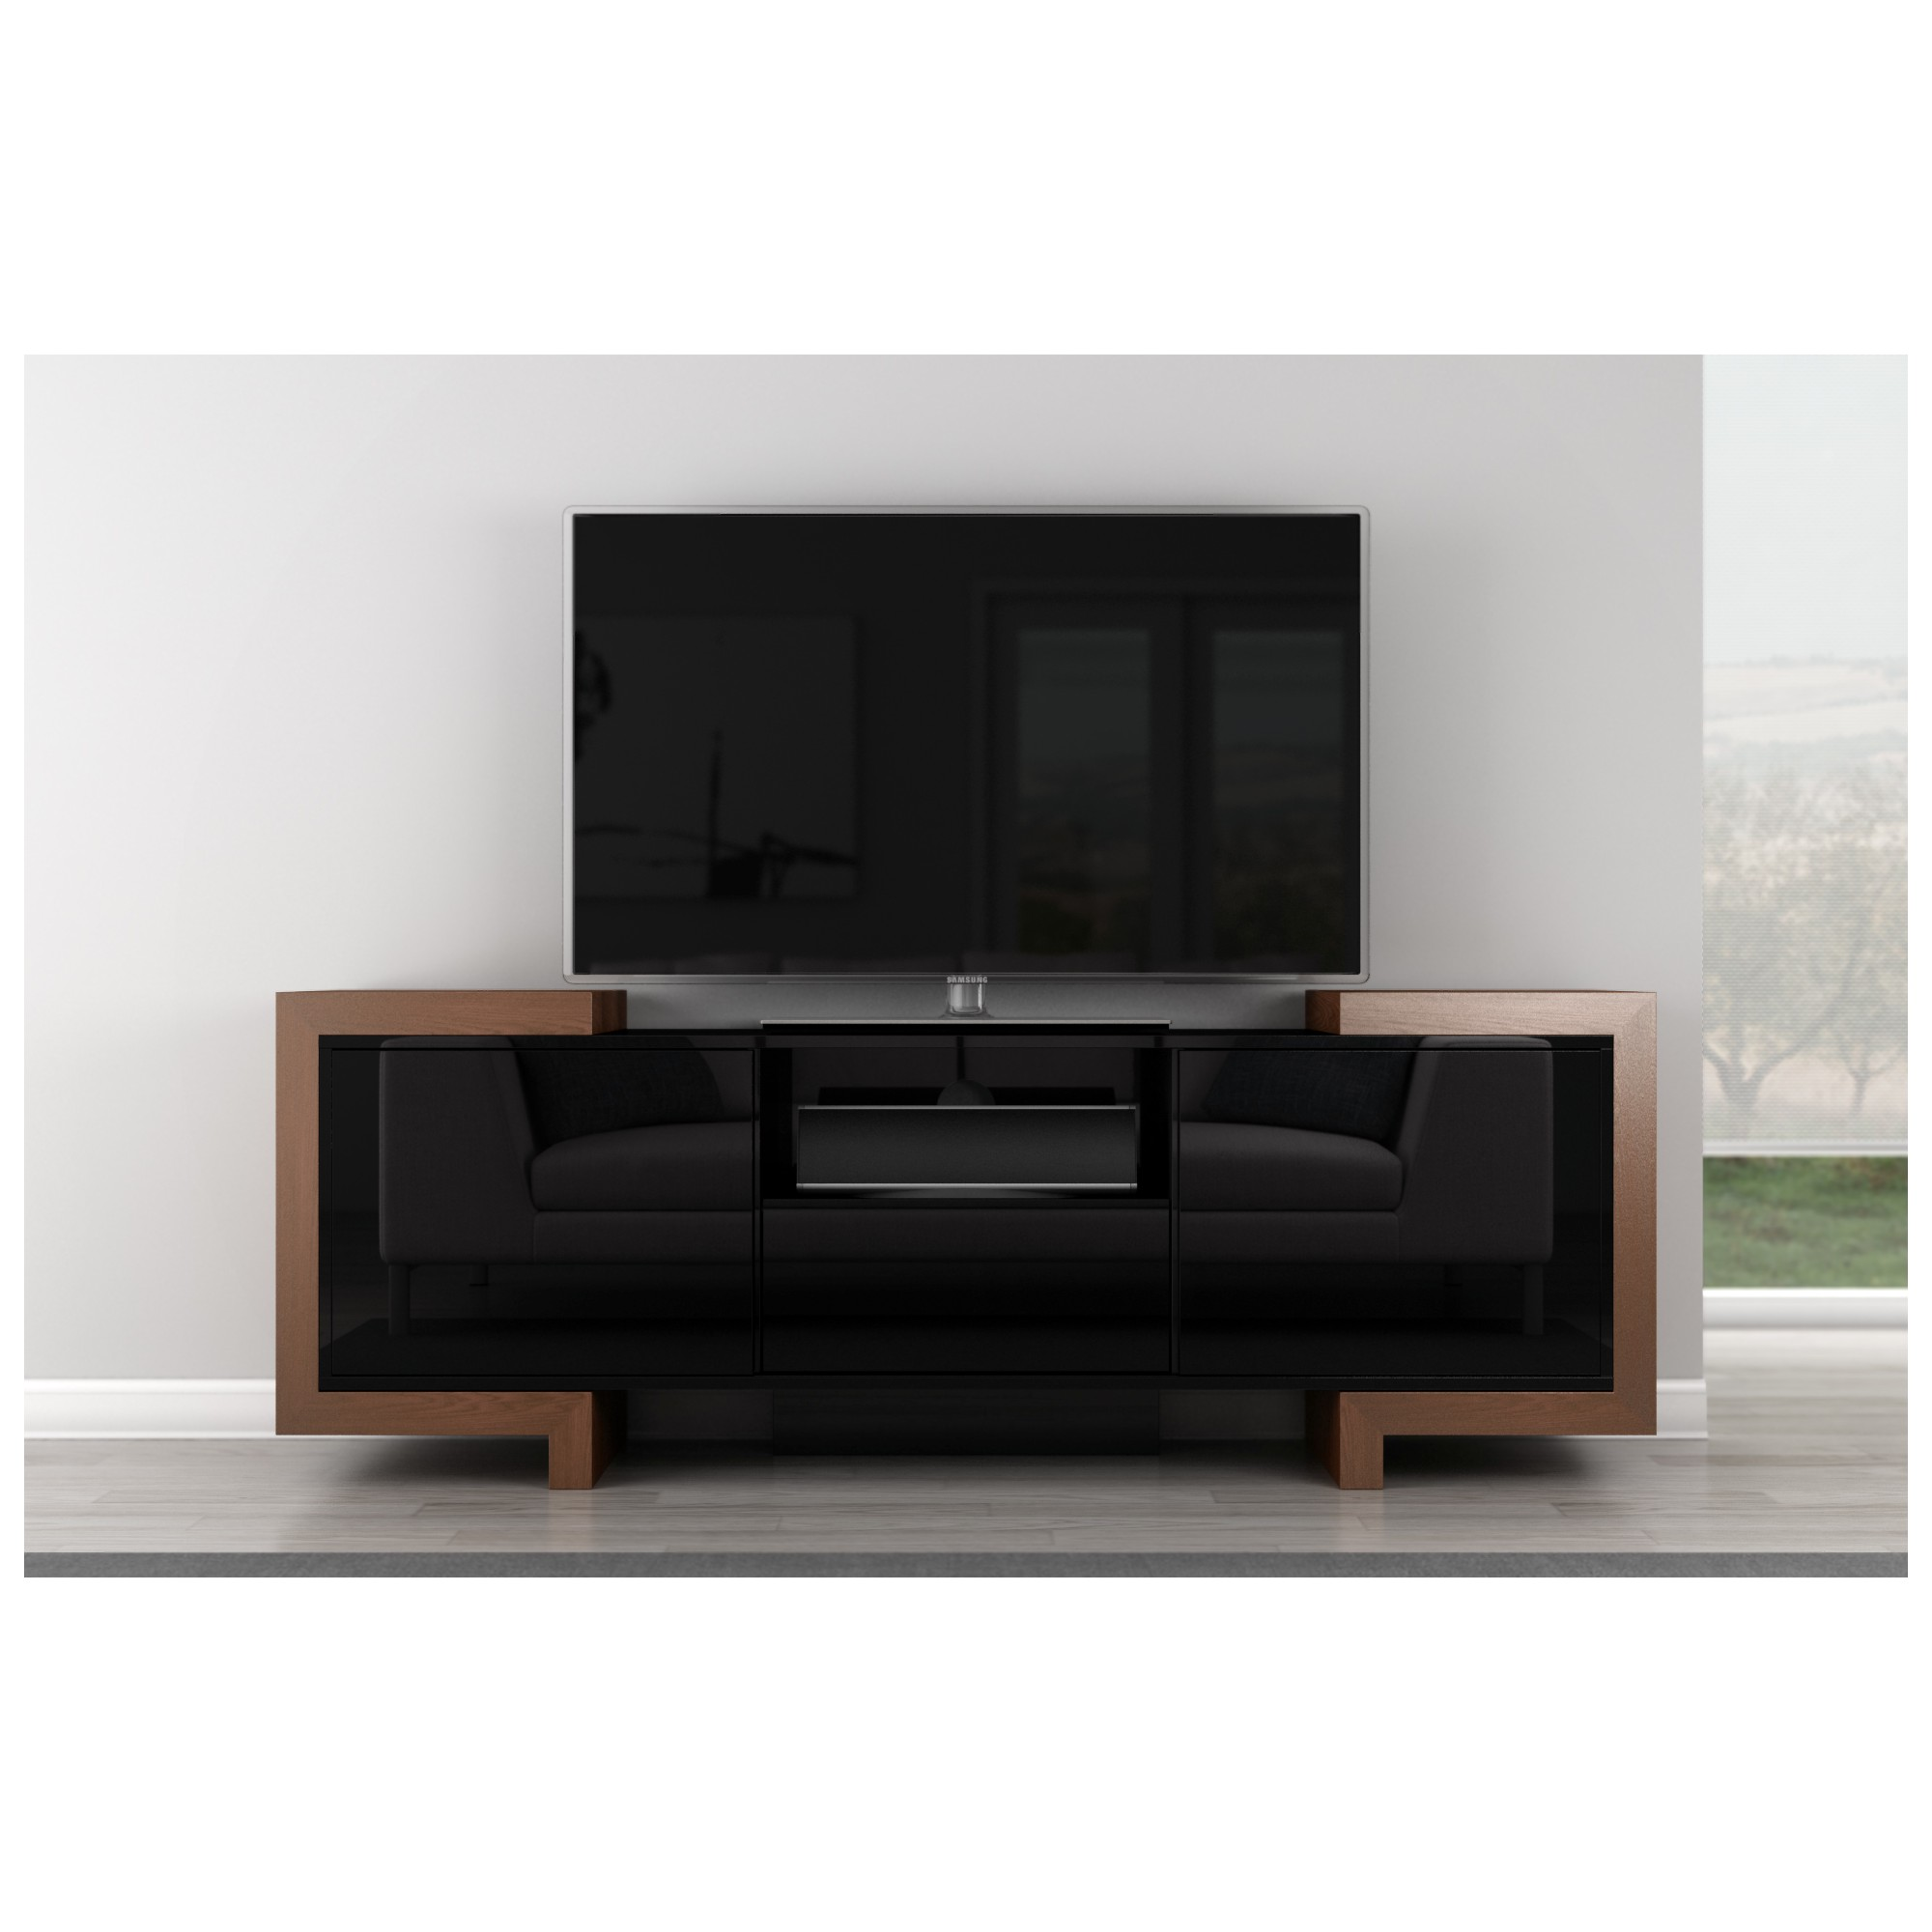 75 Tv Stand Contemporary Media Cabinet In High Gloss Black Lacquer Oak By Furnitech